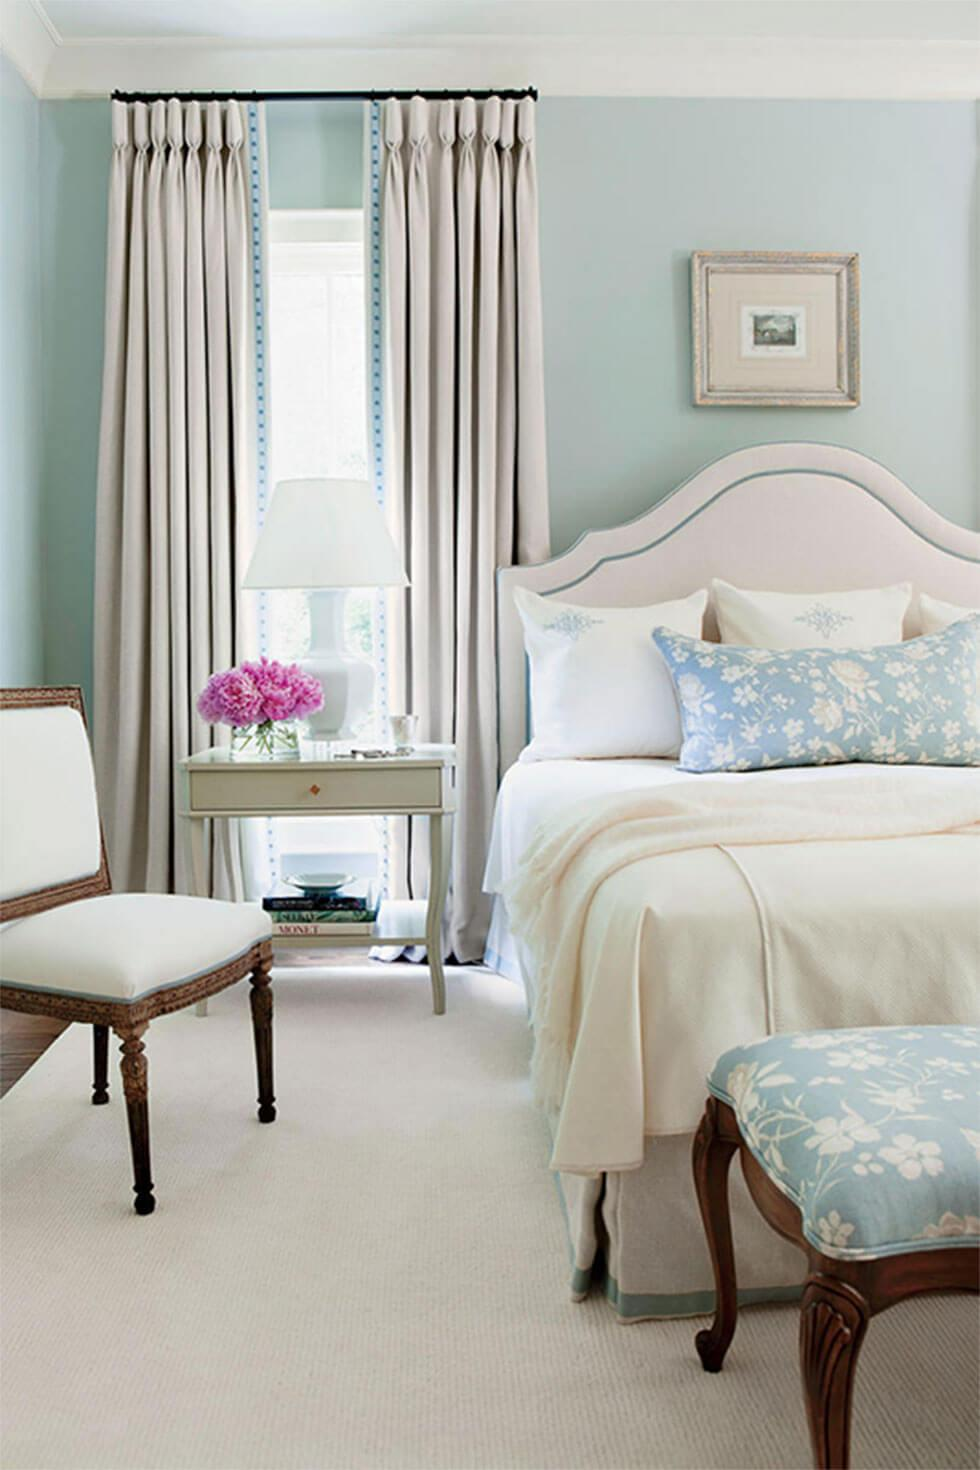 Bedroom walls painted in a pastel blue for a relaxing mood.